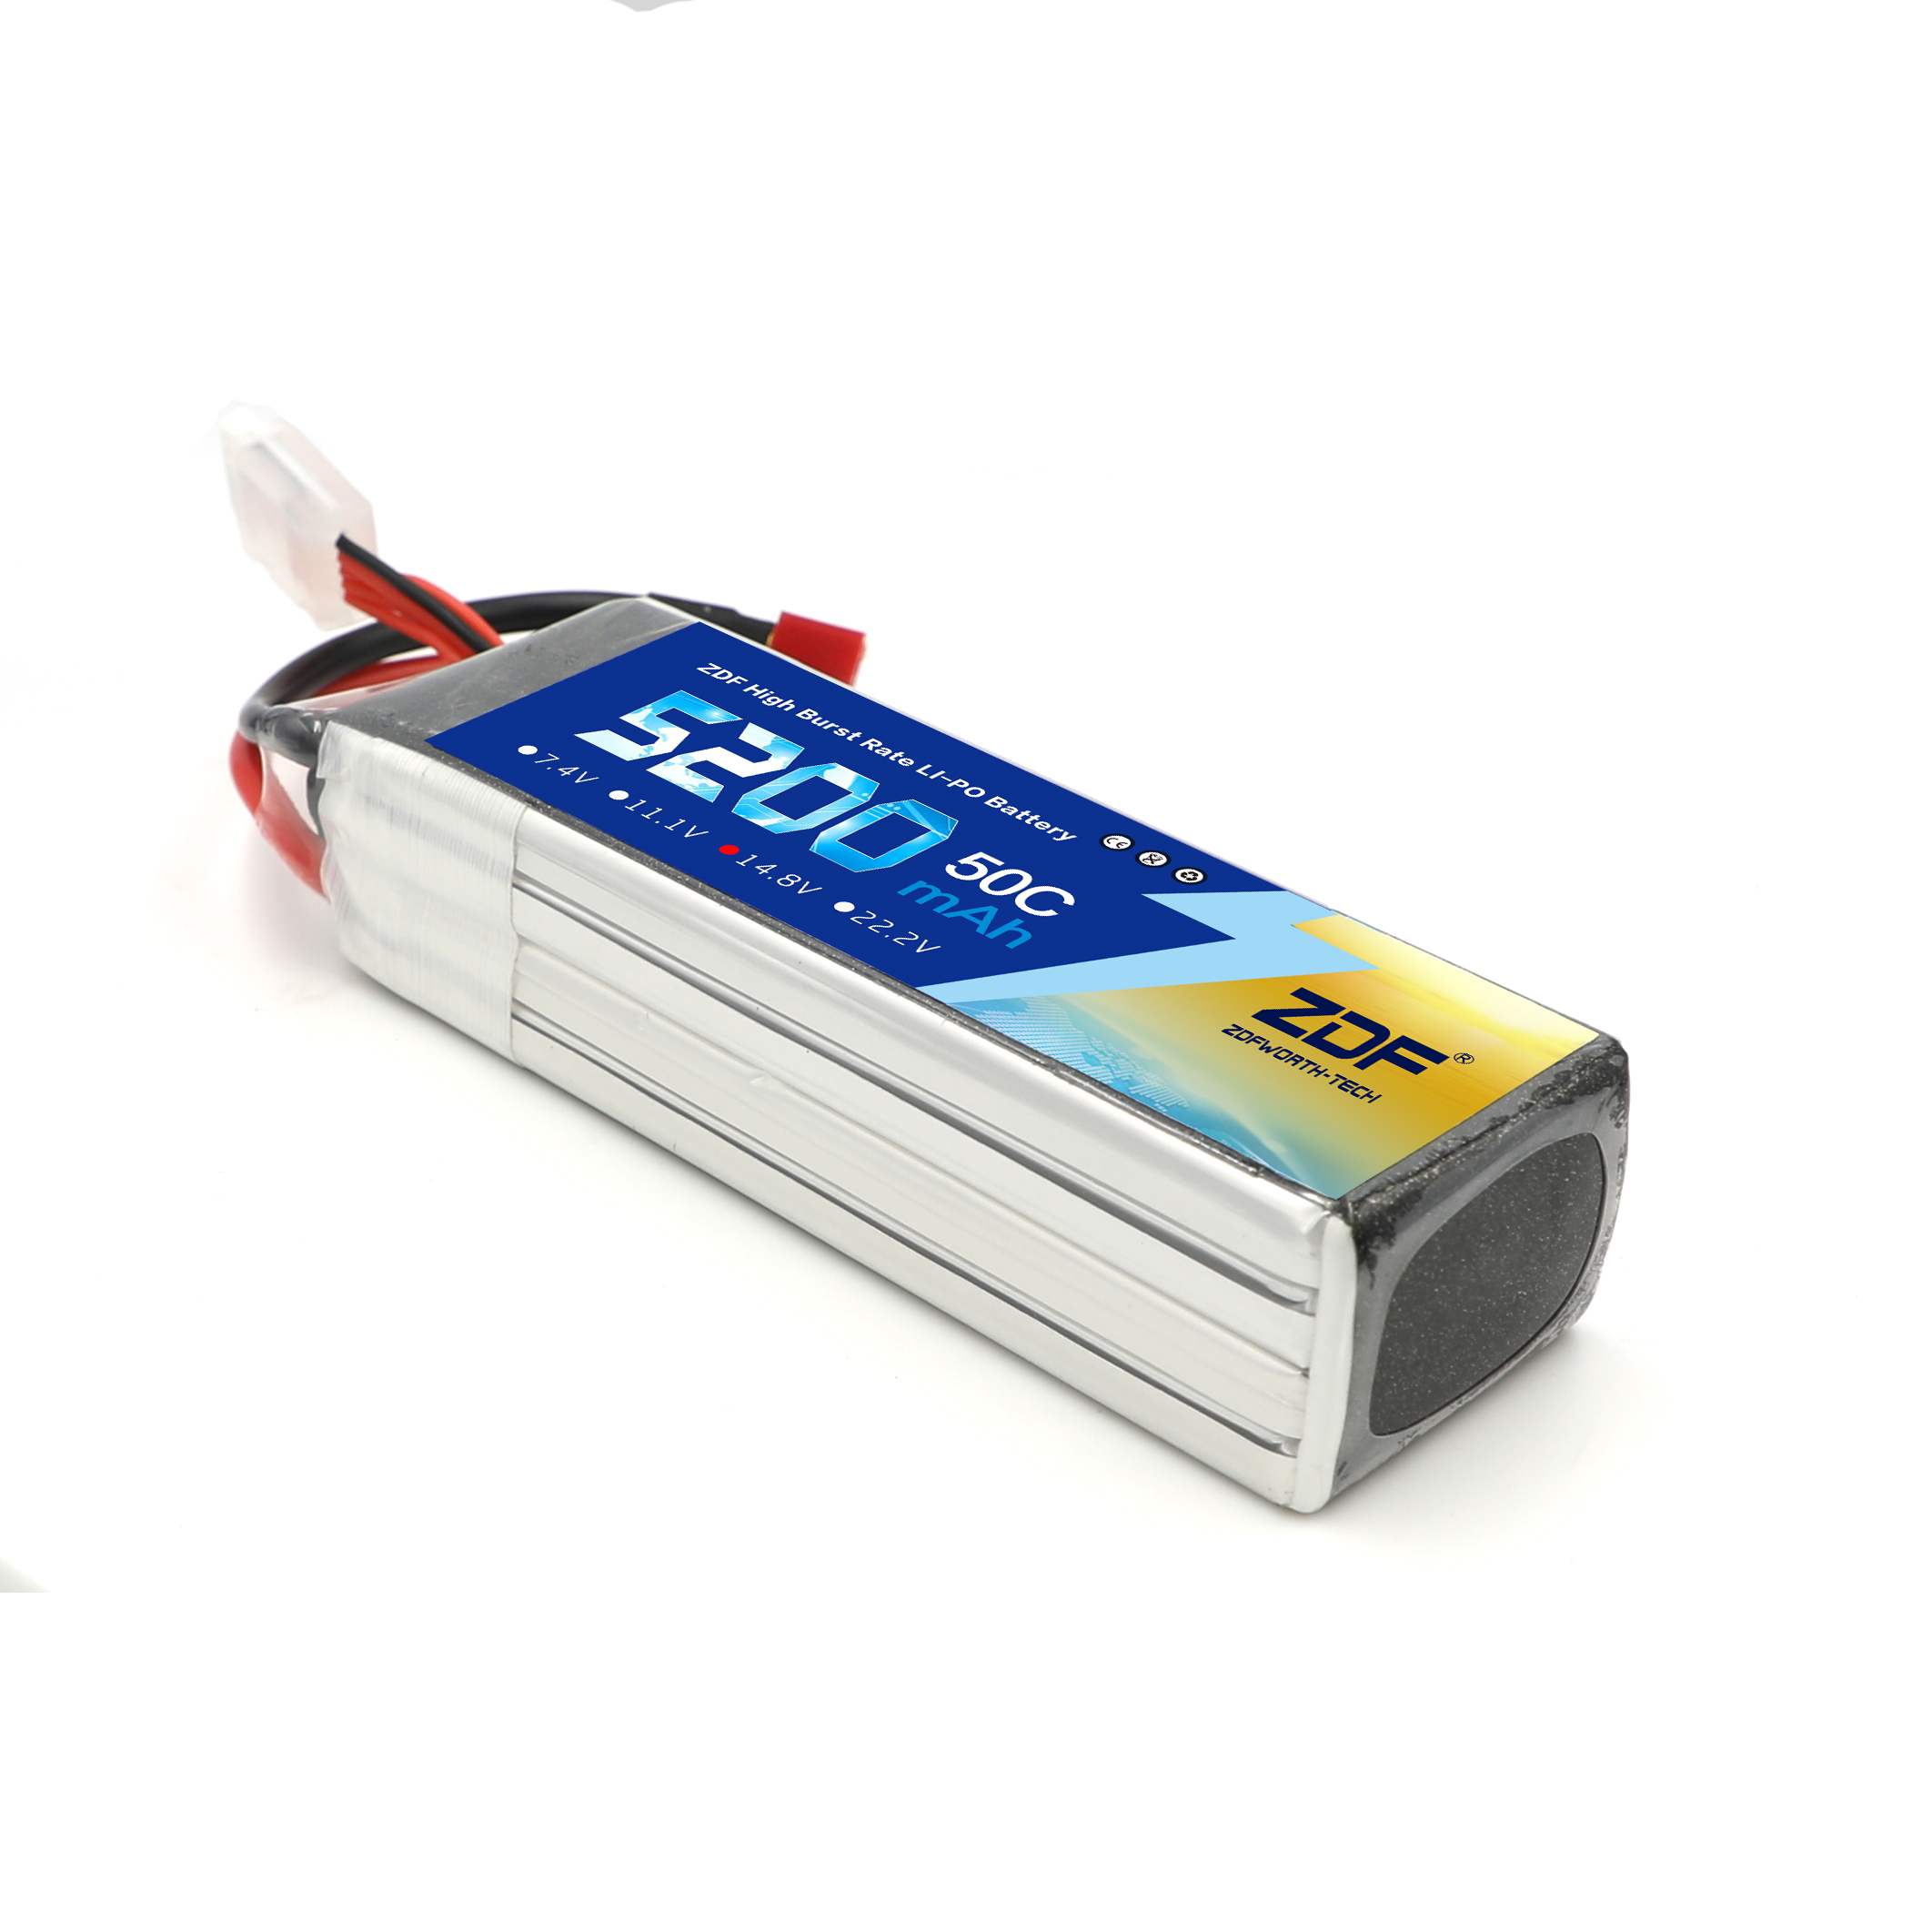 ZDF RC Battery 14.8V <font><b>5200Mah</b></font> 50C <font><b>Lipo</b></font> Battery for RC Airplane Boat Car Quadcopter Helicopter image